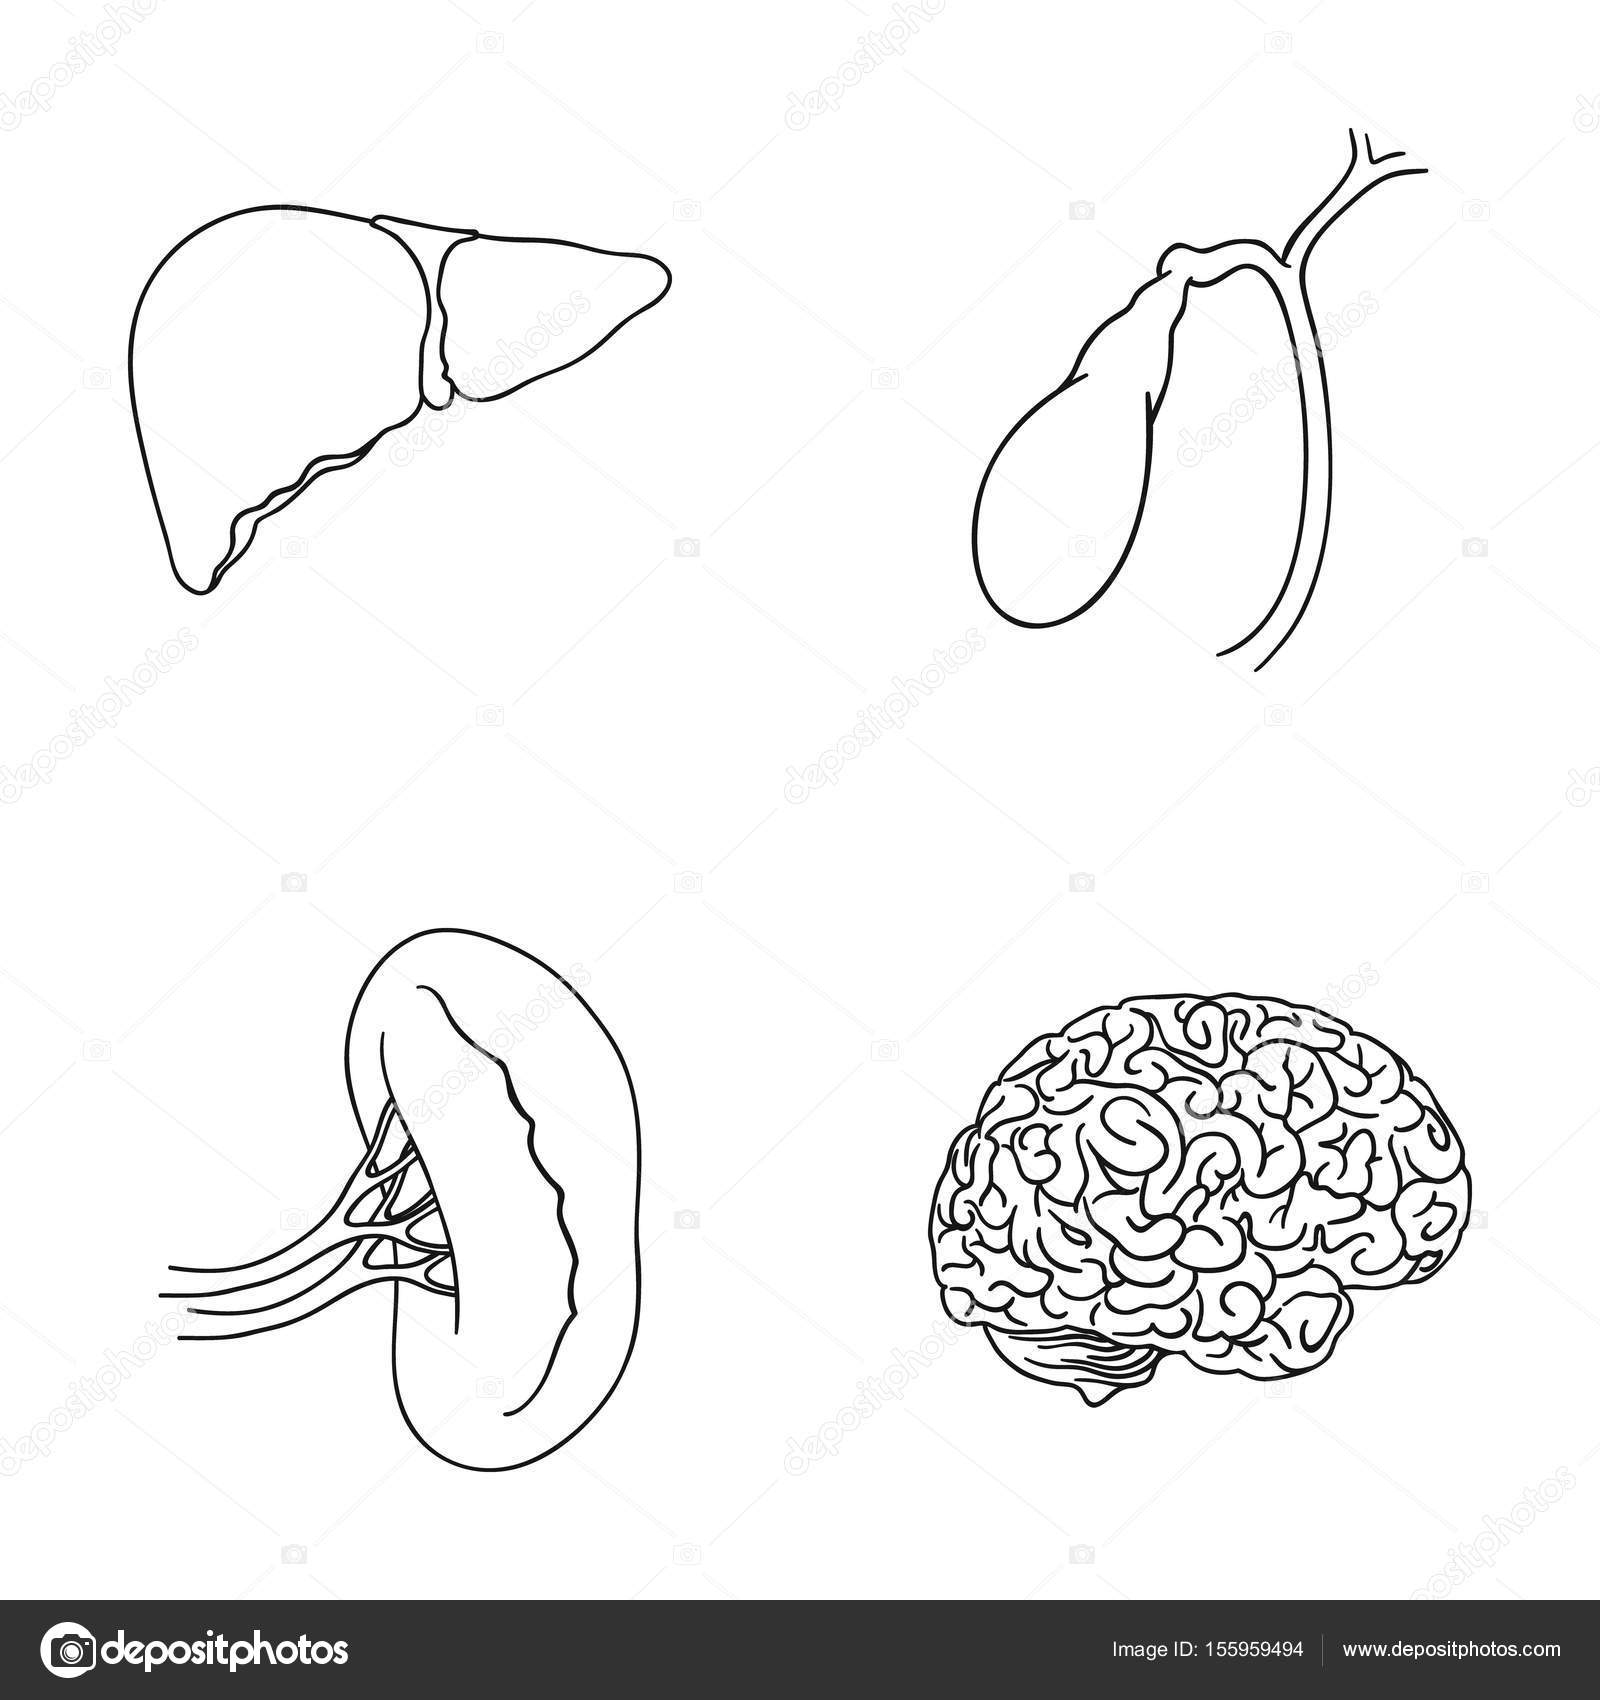 Human Liver Drawing At Getdrawings